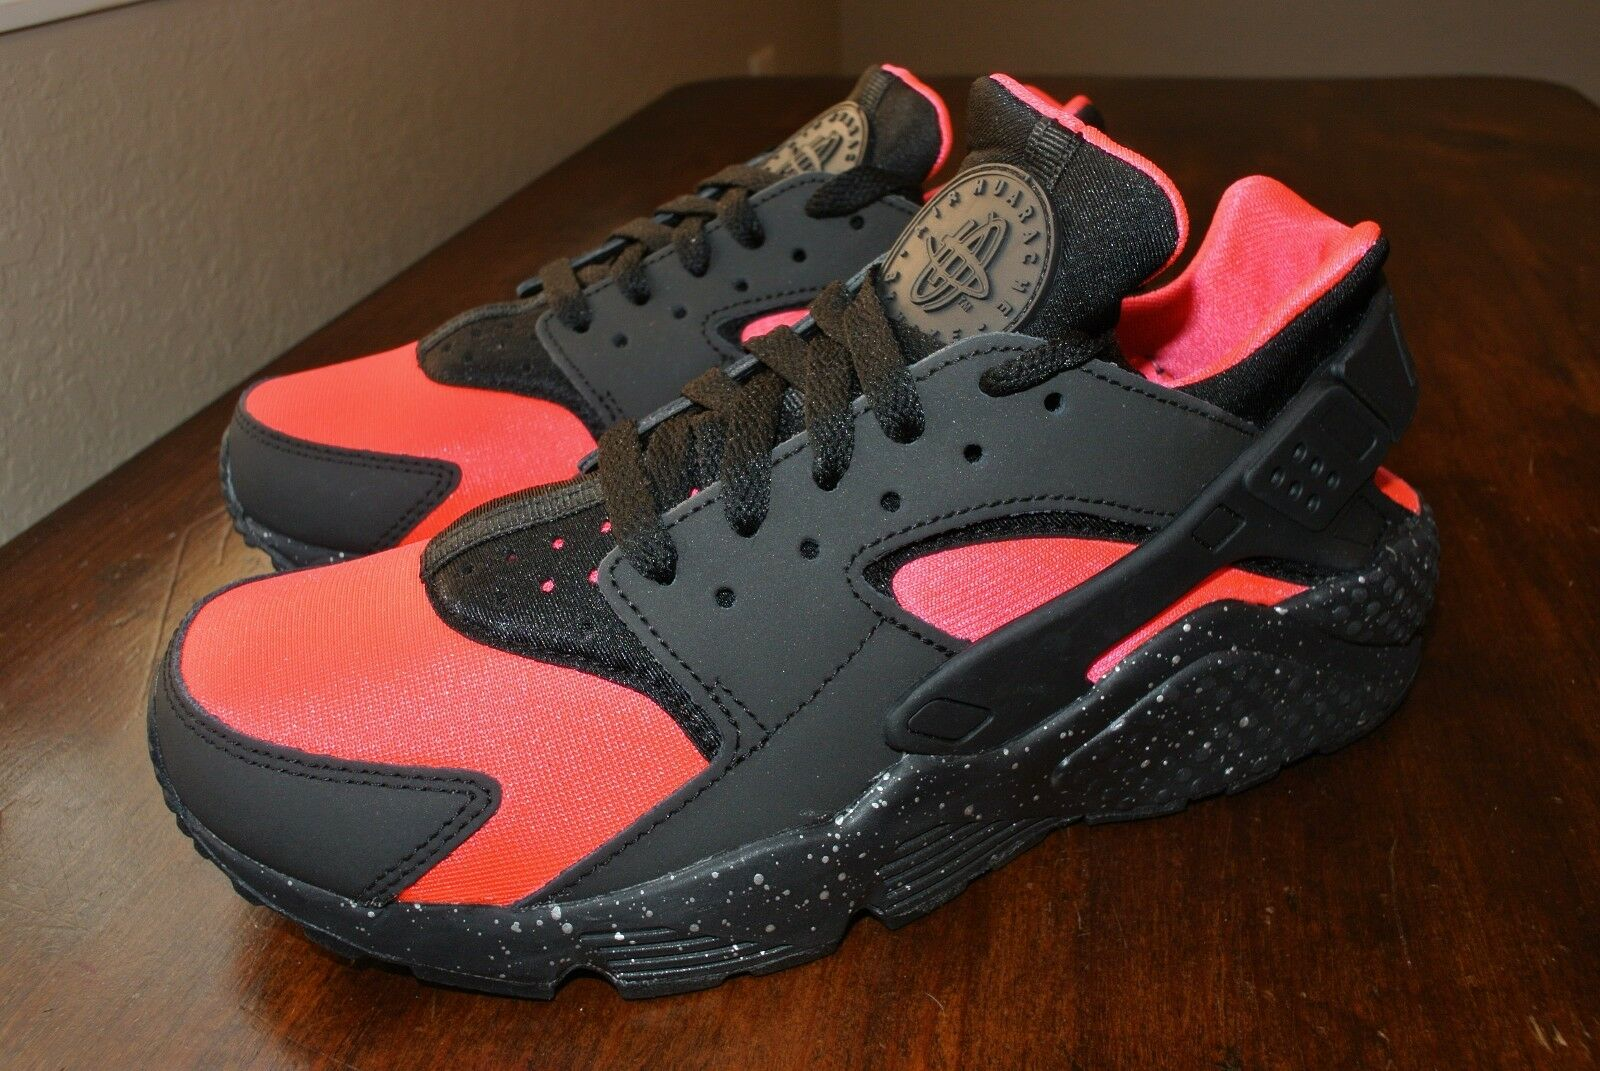 NIKE NikeiD AIR HUARACHE BLACK HYPER PINK 777330 972 US MENS SIZE 6 = 7.5 WMNS Comfortable and good-looking